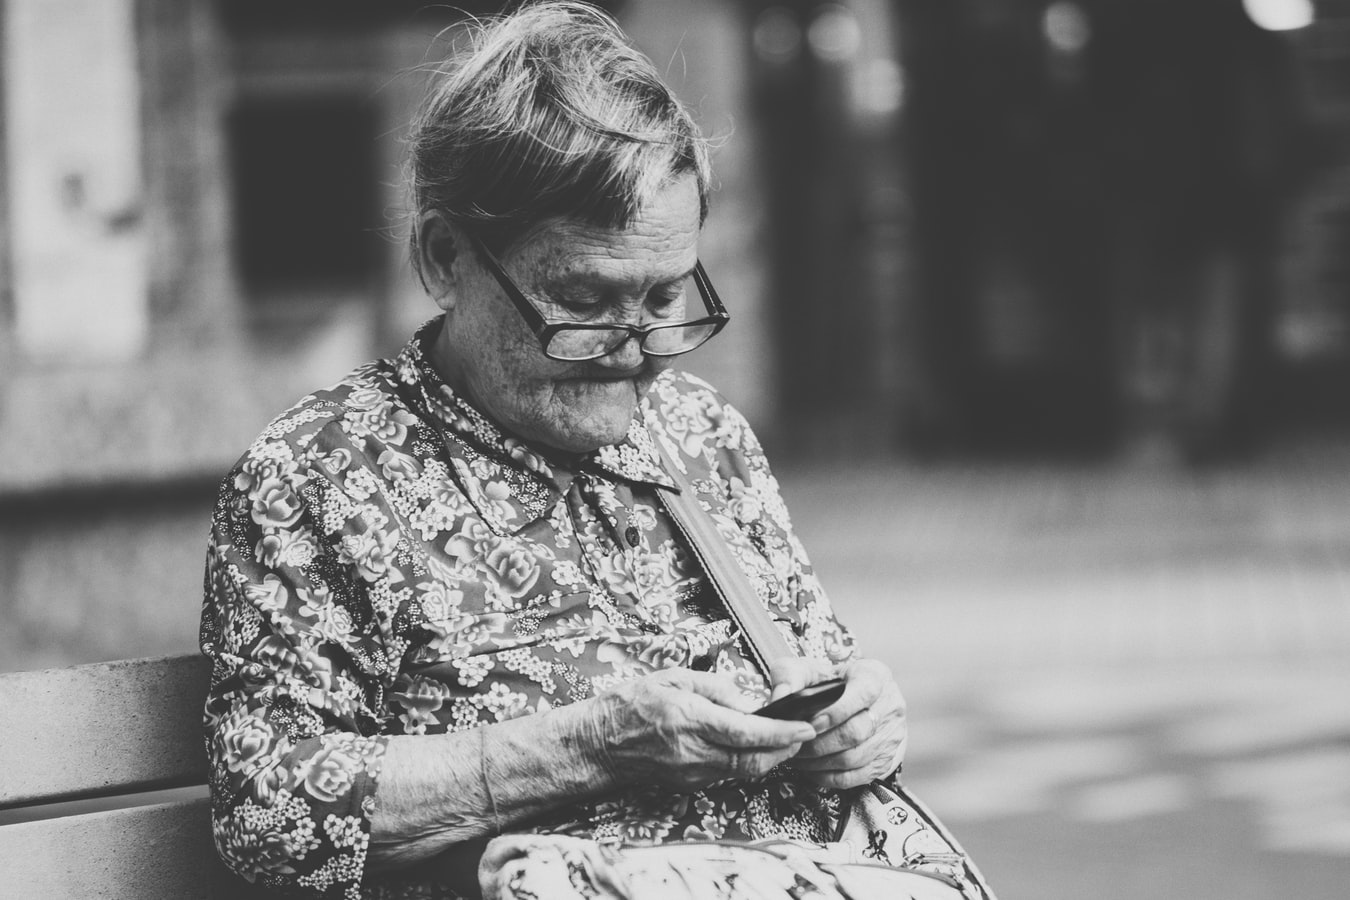 An older woman scrolling on her cell phone.